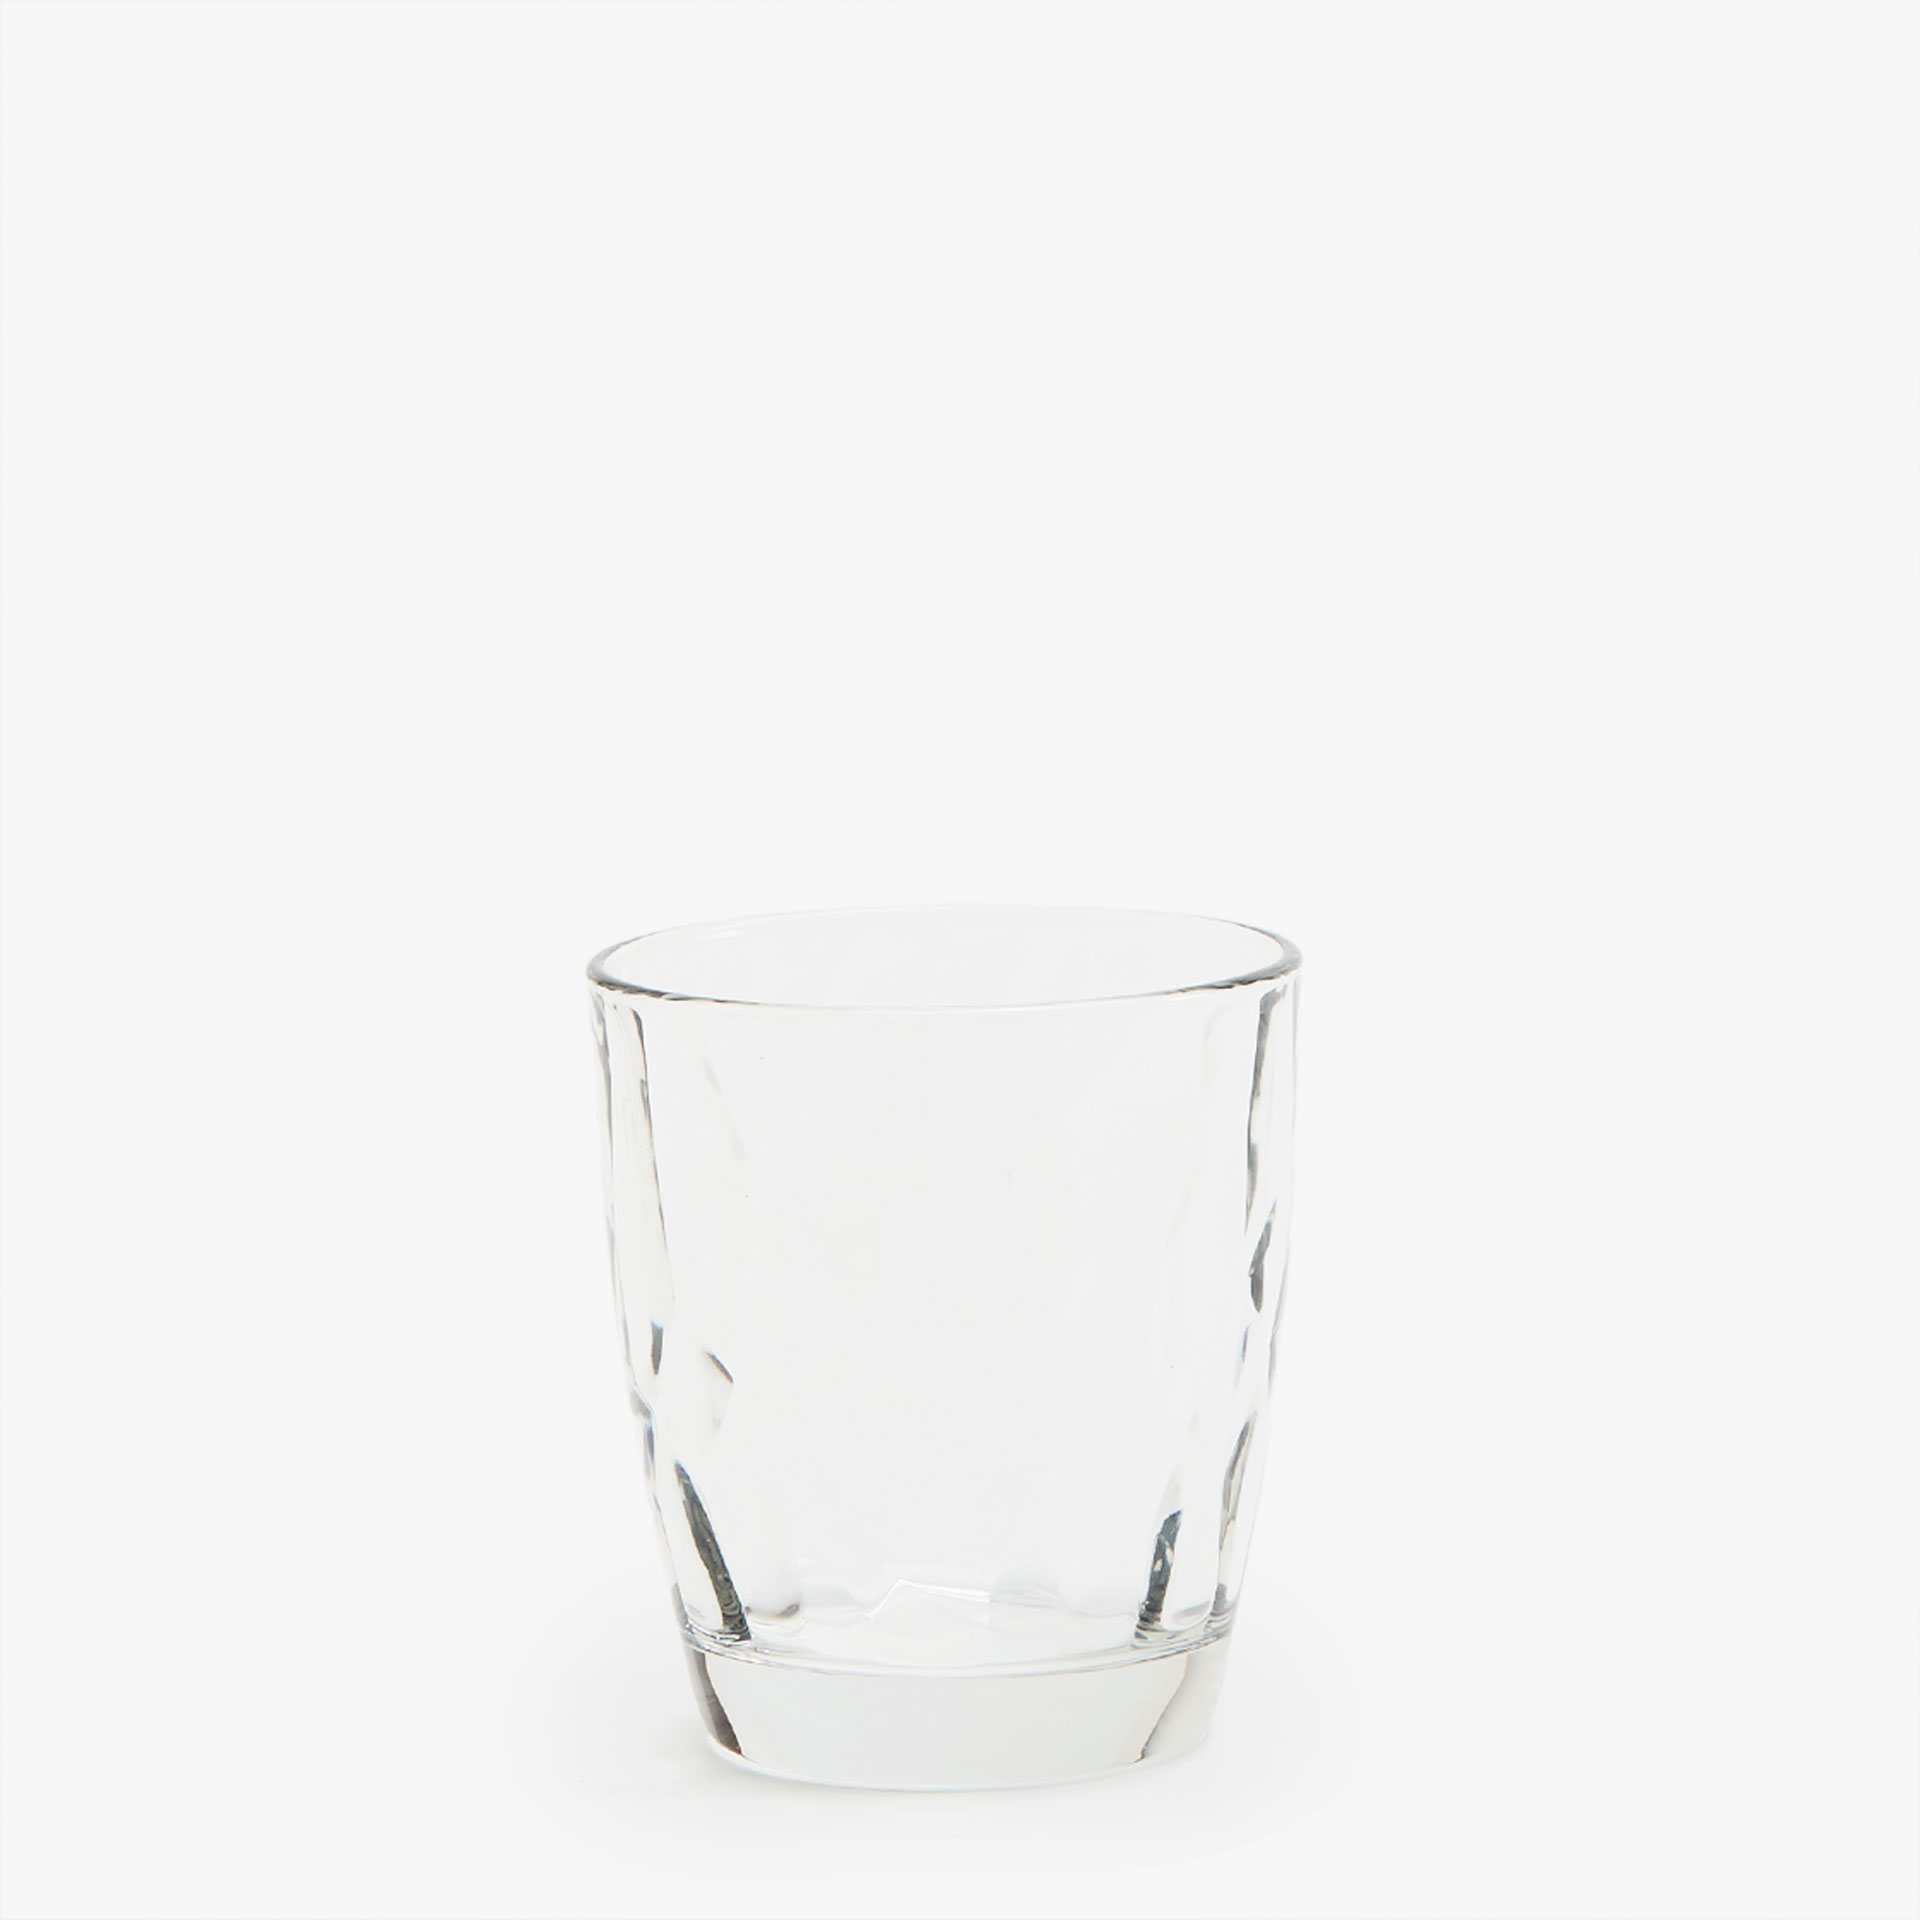 INTERIOR RAISED HAMMERED DIAMANTÉ WATER GLASS